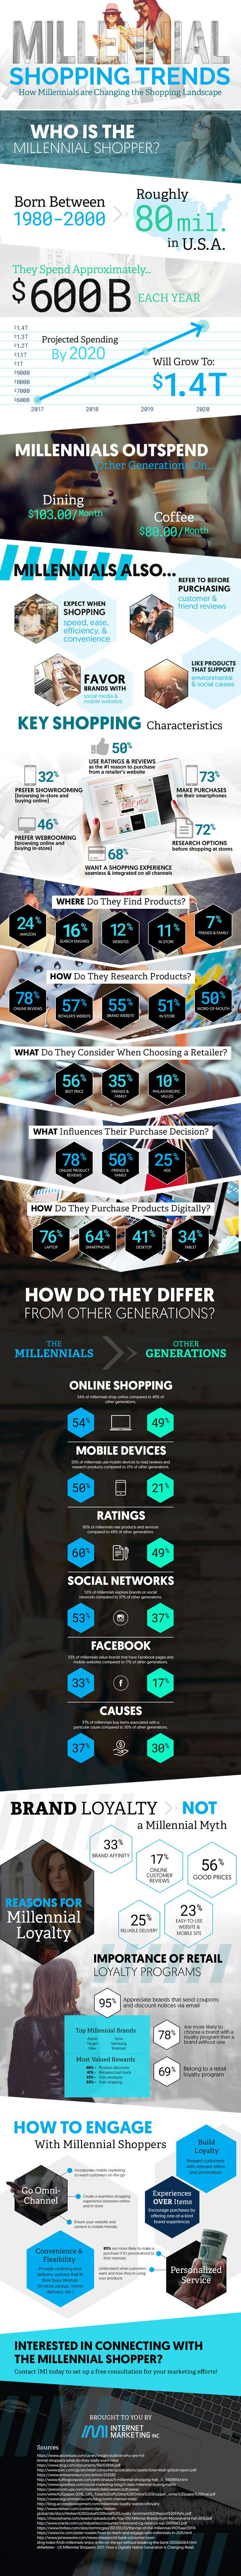 Millennials shop differently from other generations, so any marketer who wants to woo this brand-loyal generation has to know what they're up to and how they shop. See the infographic for that info.